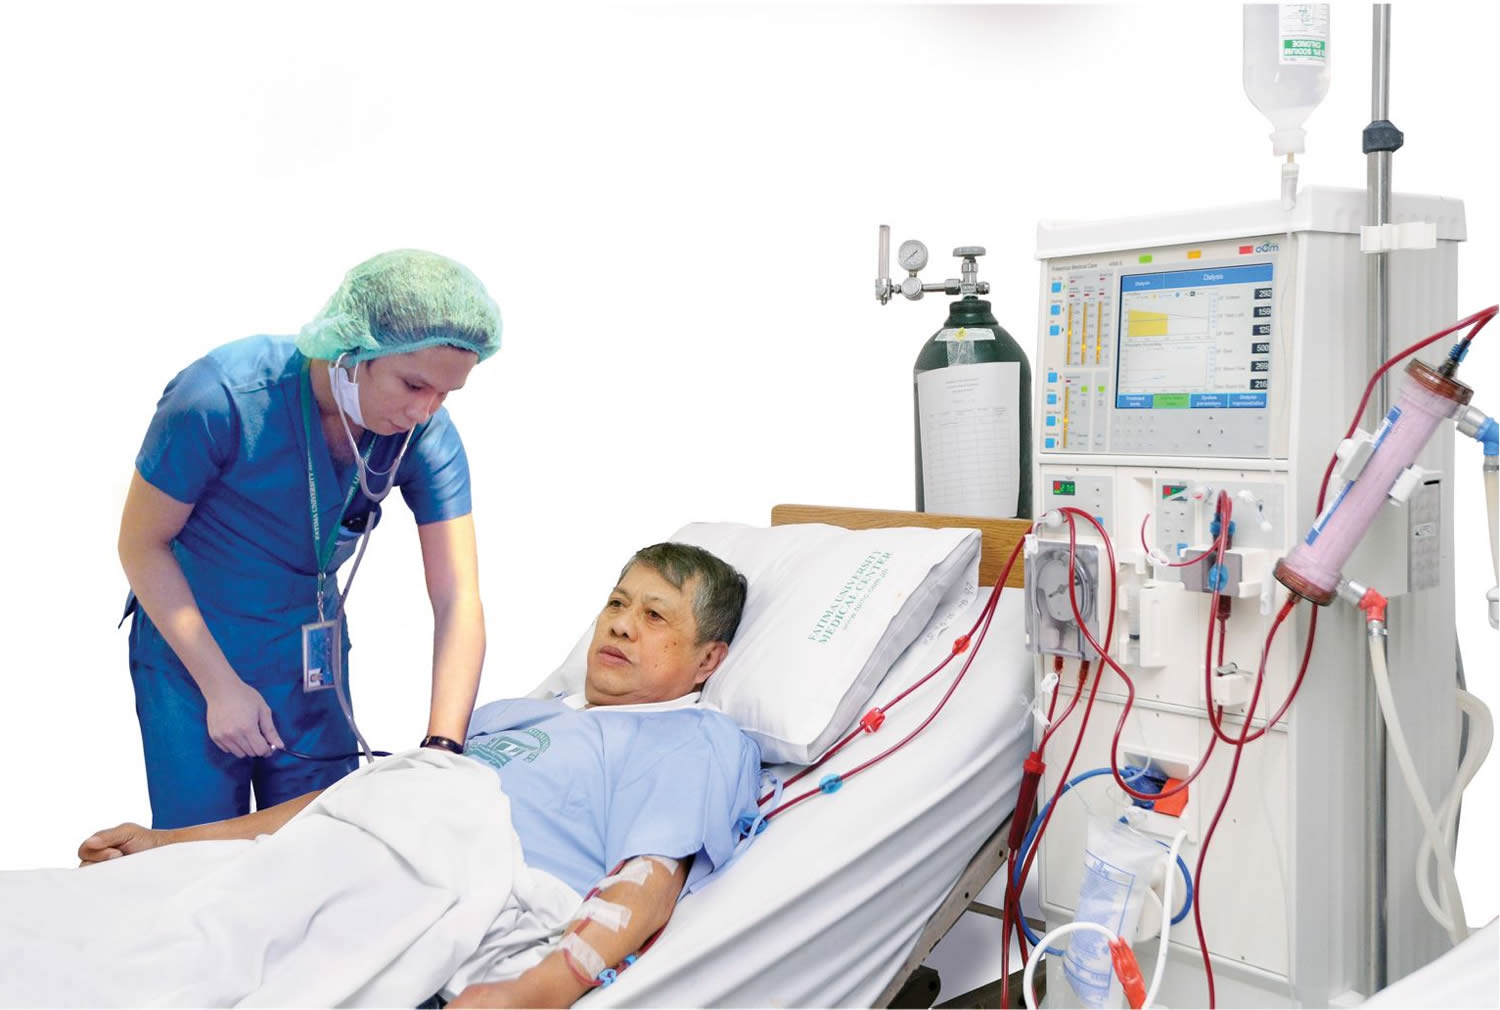 hemodialysis unit for kidney failure